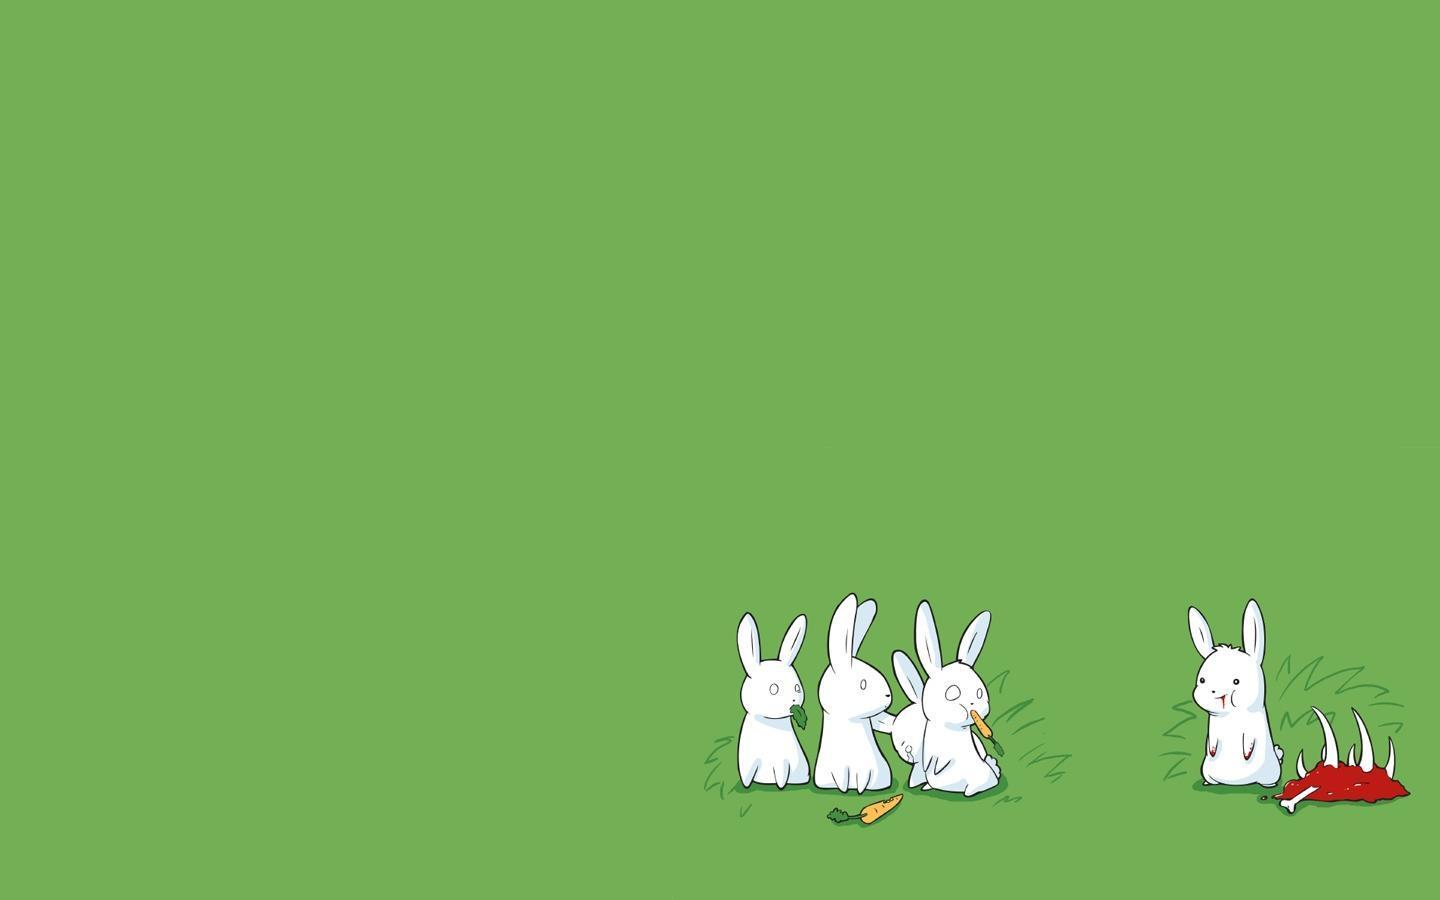 Bunny Rabbit  PPT Background Background for Powerpoint Program